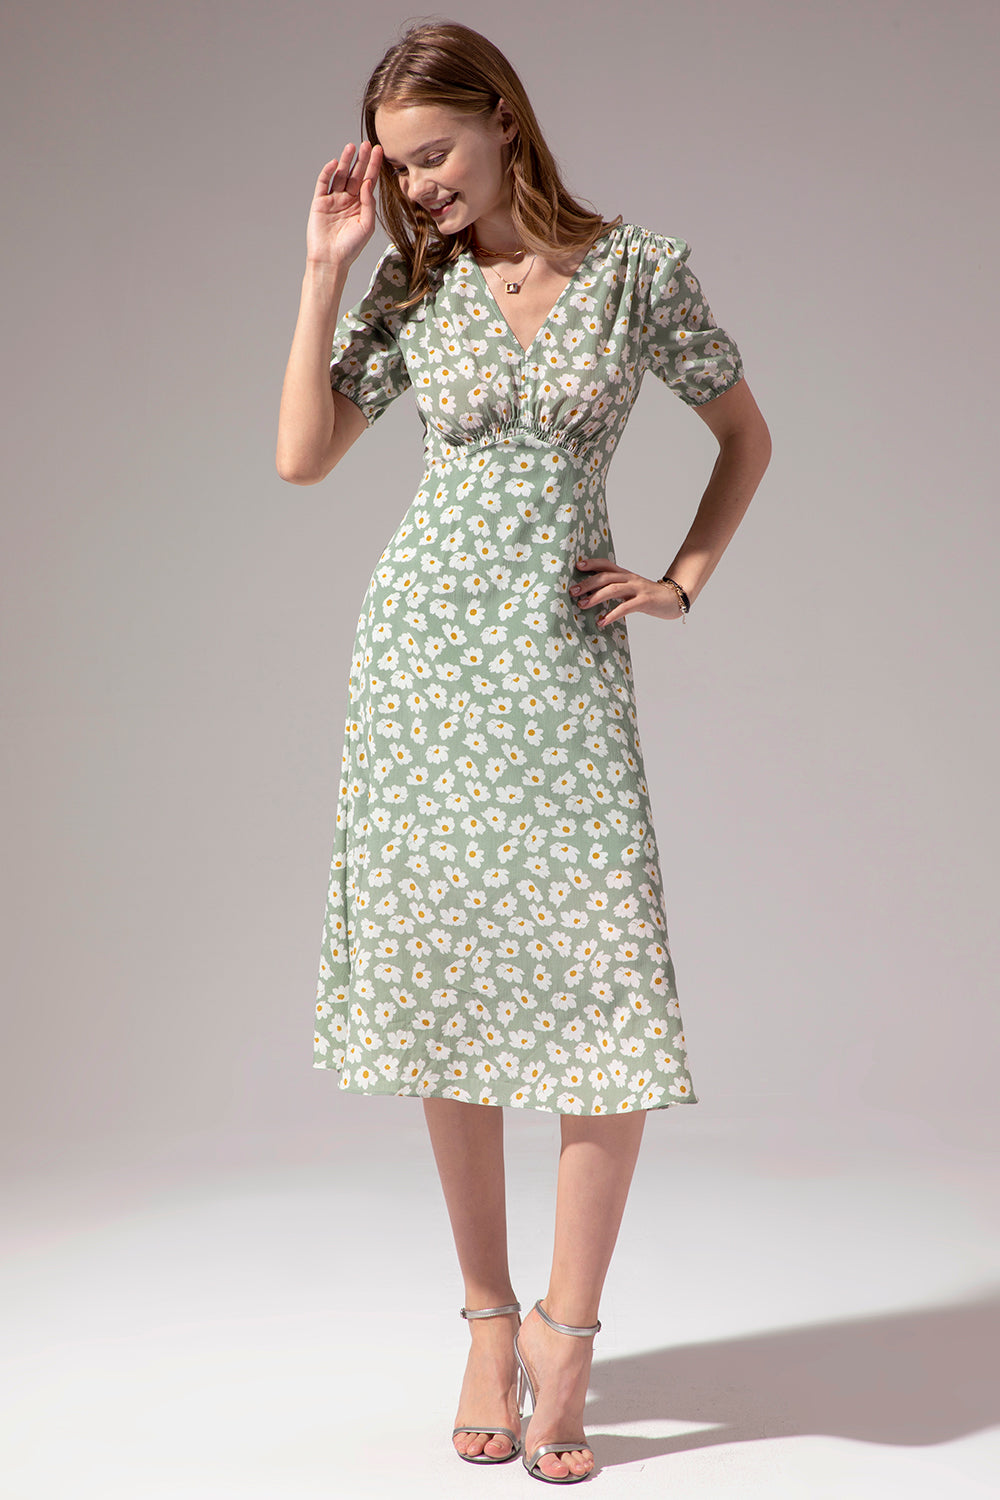 1950s Floral Print Green Summer Dress